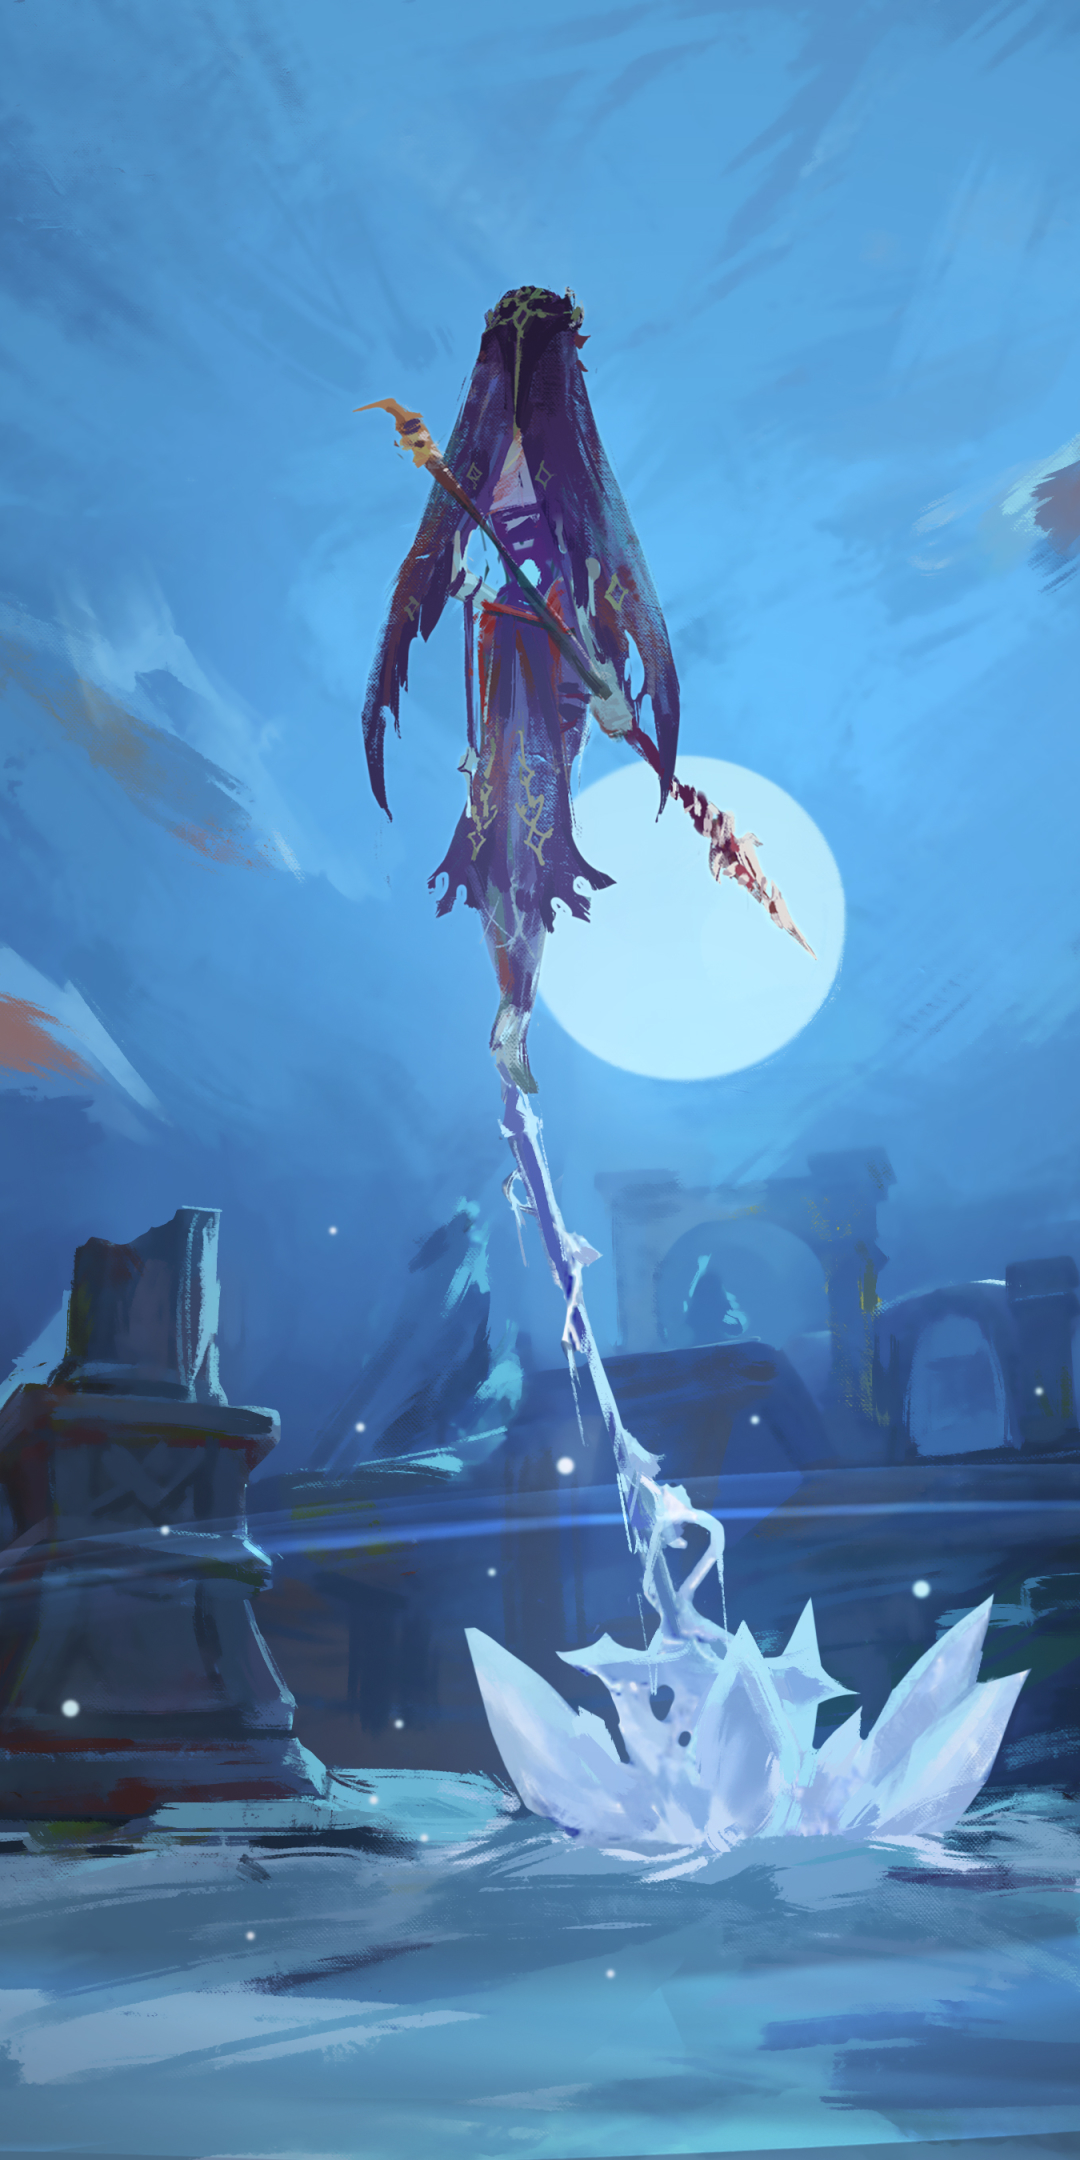 Download Genshin Impact Klee Anime Style Jumping Wallpapers for Google Nexus 10